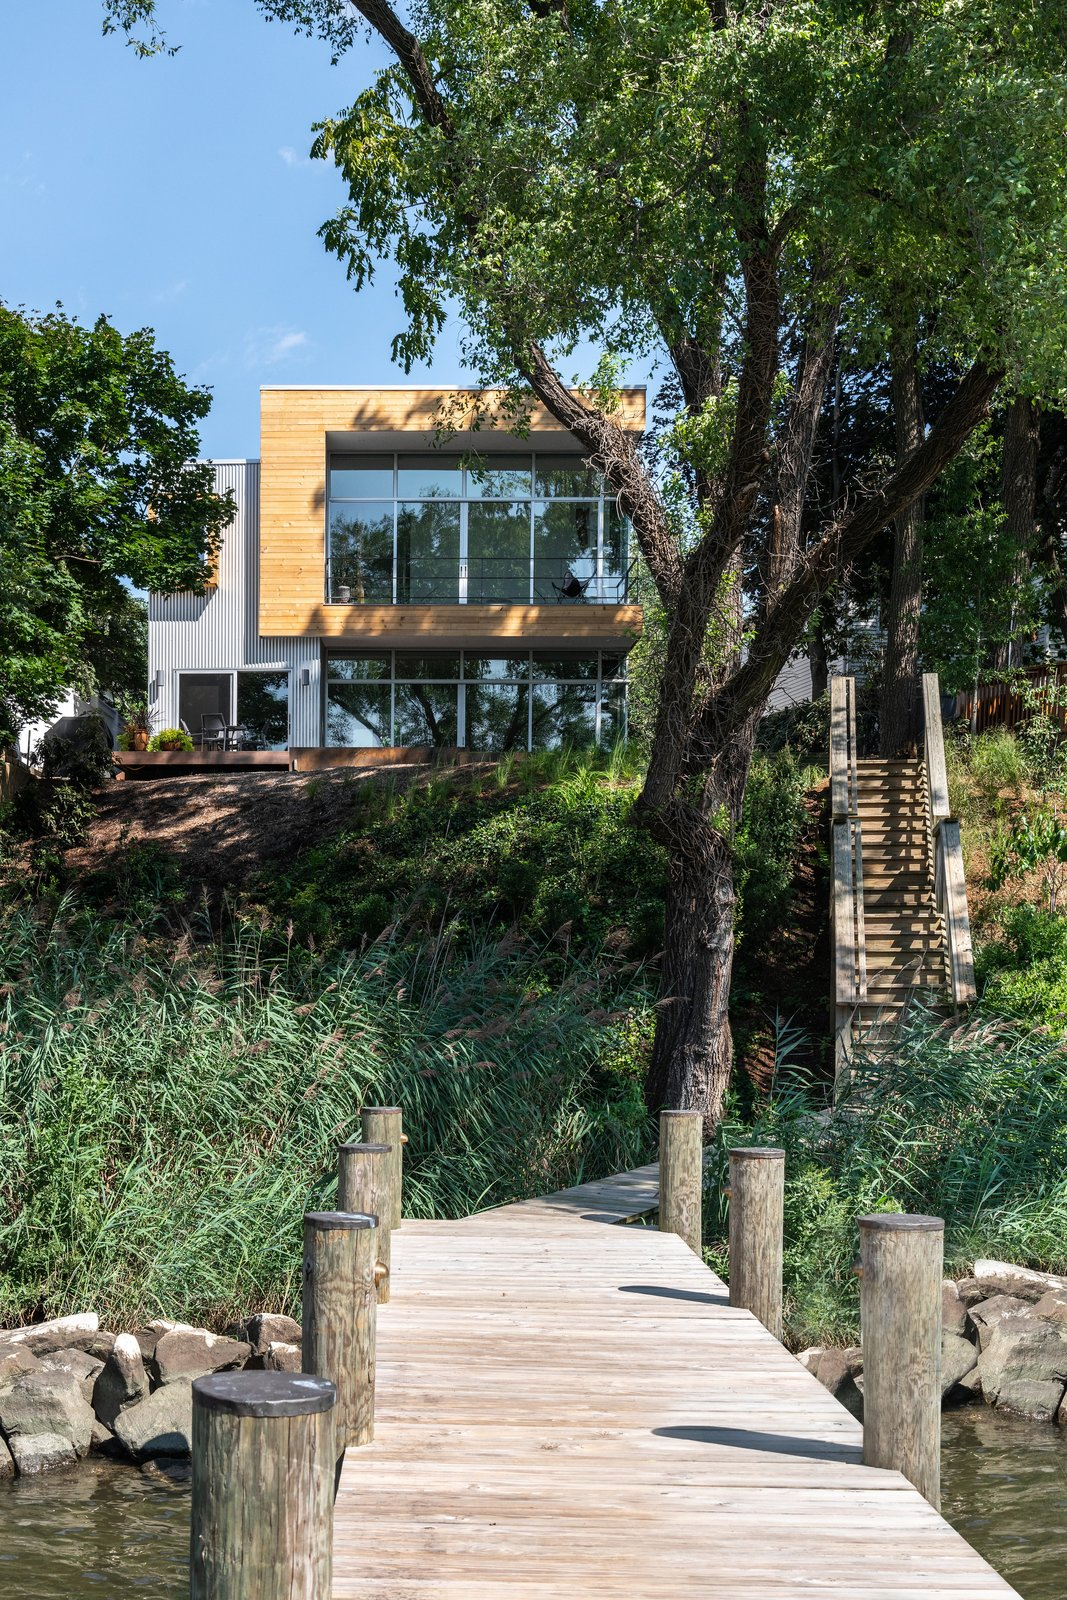 Exterior, Glass Siding Material, Metal Roof Material, Stucco Siding Material, Green Roof Material, Flat RoofLine, House Building Type, Wood Siding Material, and Metal Siding Material View from Boat Dock  Spa Creek House by GriD